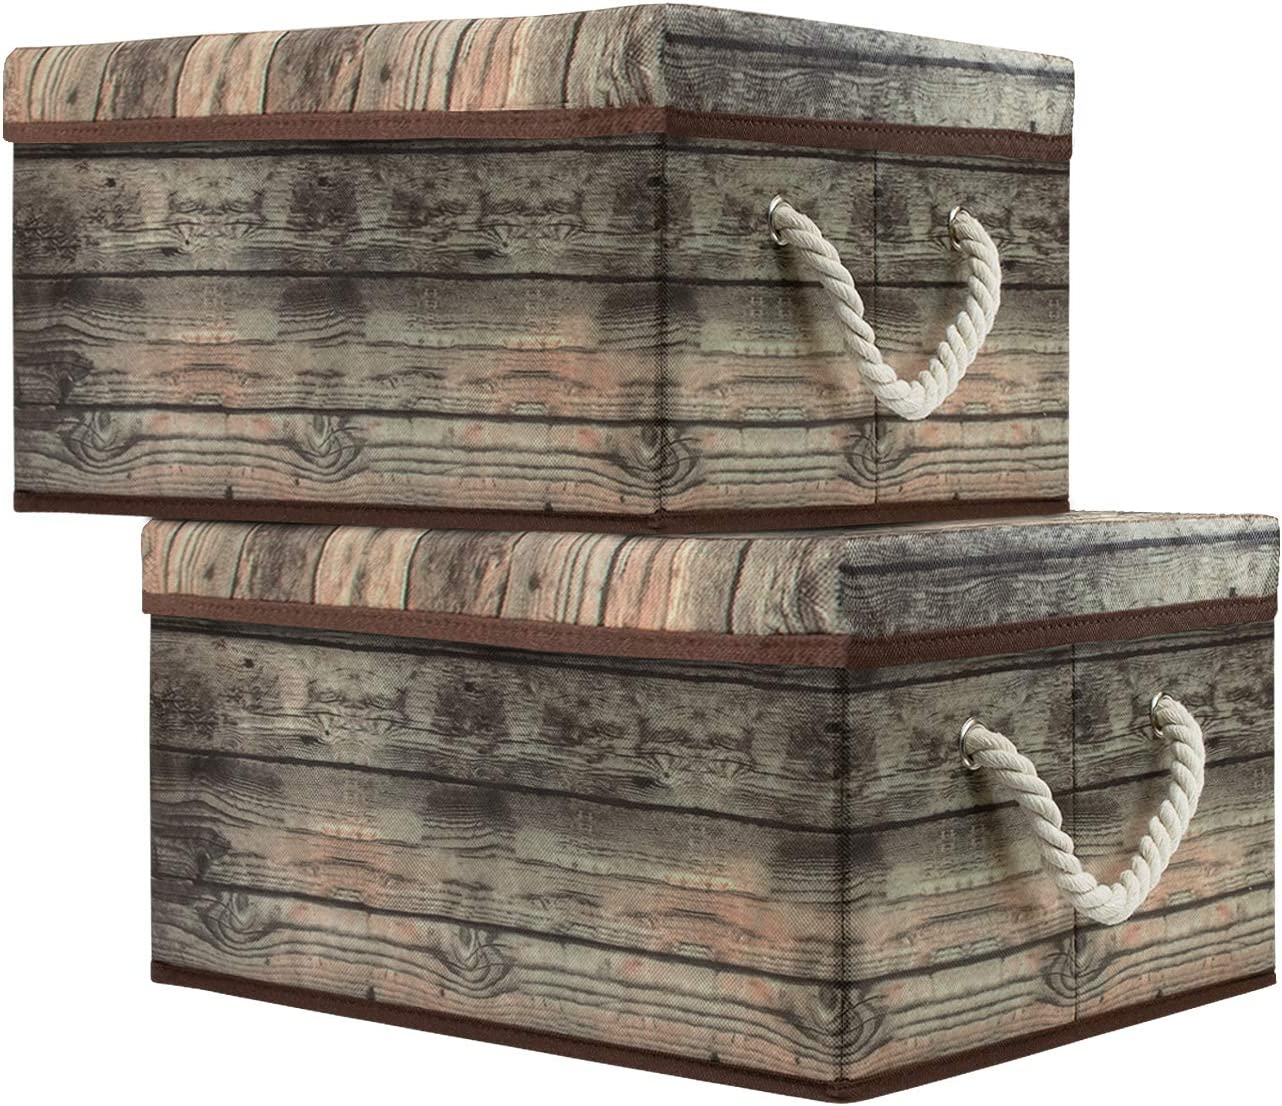 Sorbus Storage Box Set with Lid, Carry Handles, Foldable Frame, Rustic Wood Grain Print Bins, Great for Toys, Memorabilia, Closet, Office, Bedroom, 2-Pack (Wood Box Set - Brown)